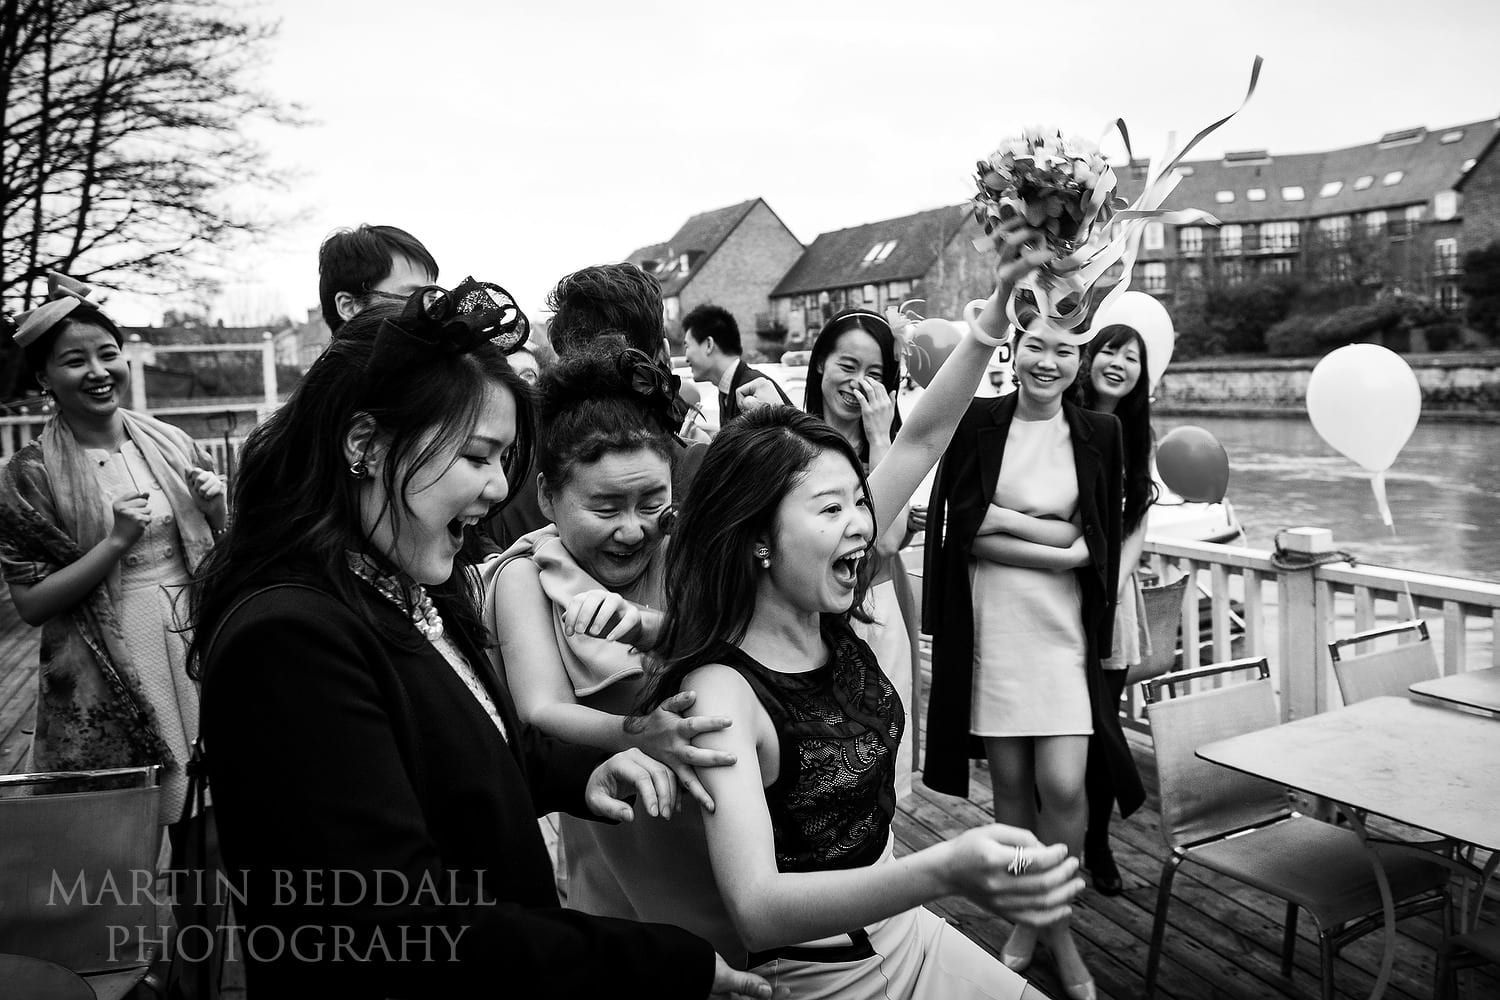 Catching the bride's bouquet